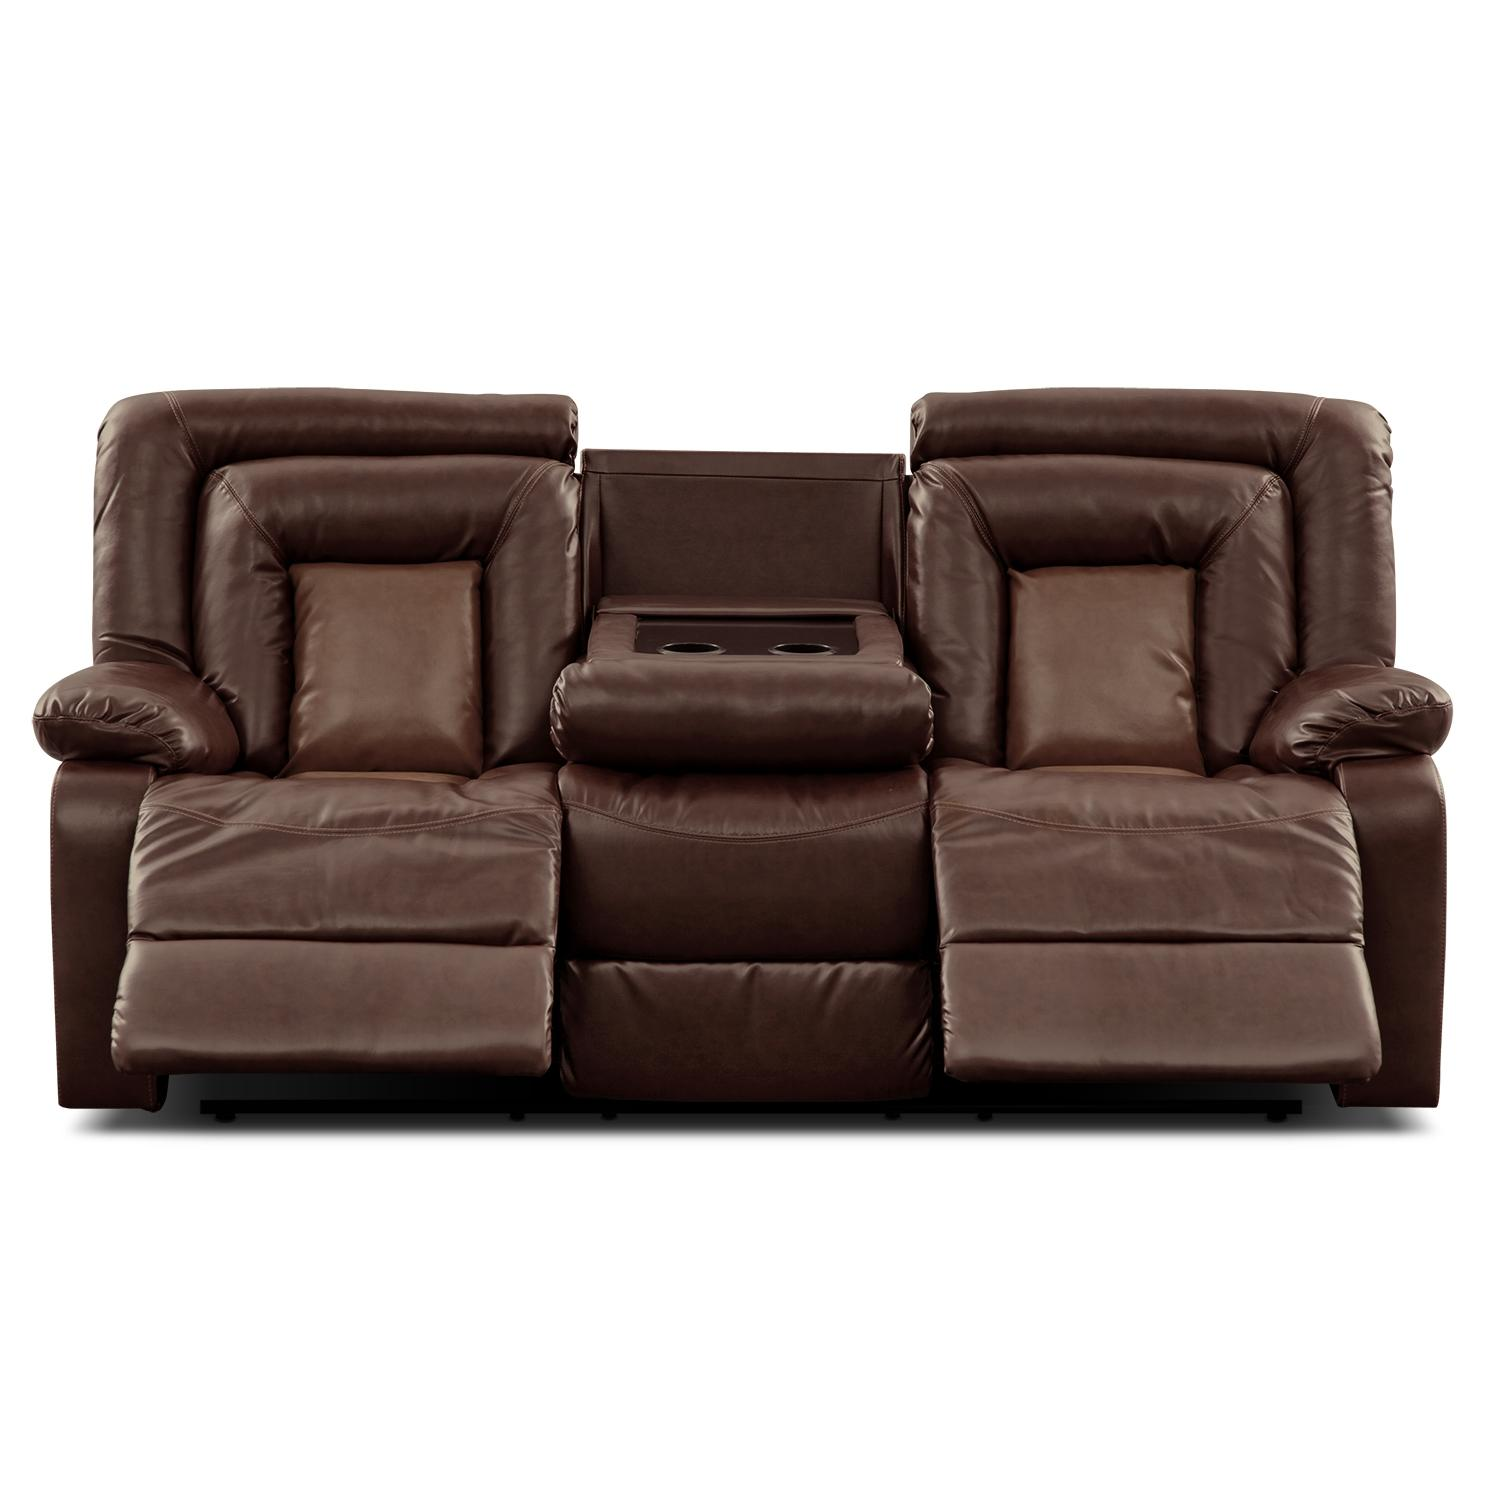 Cobra Leather Dual Reclining Sofa Value From Valuecityfurniture